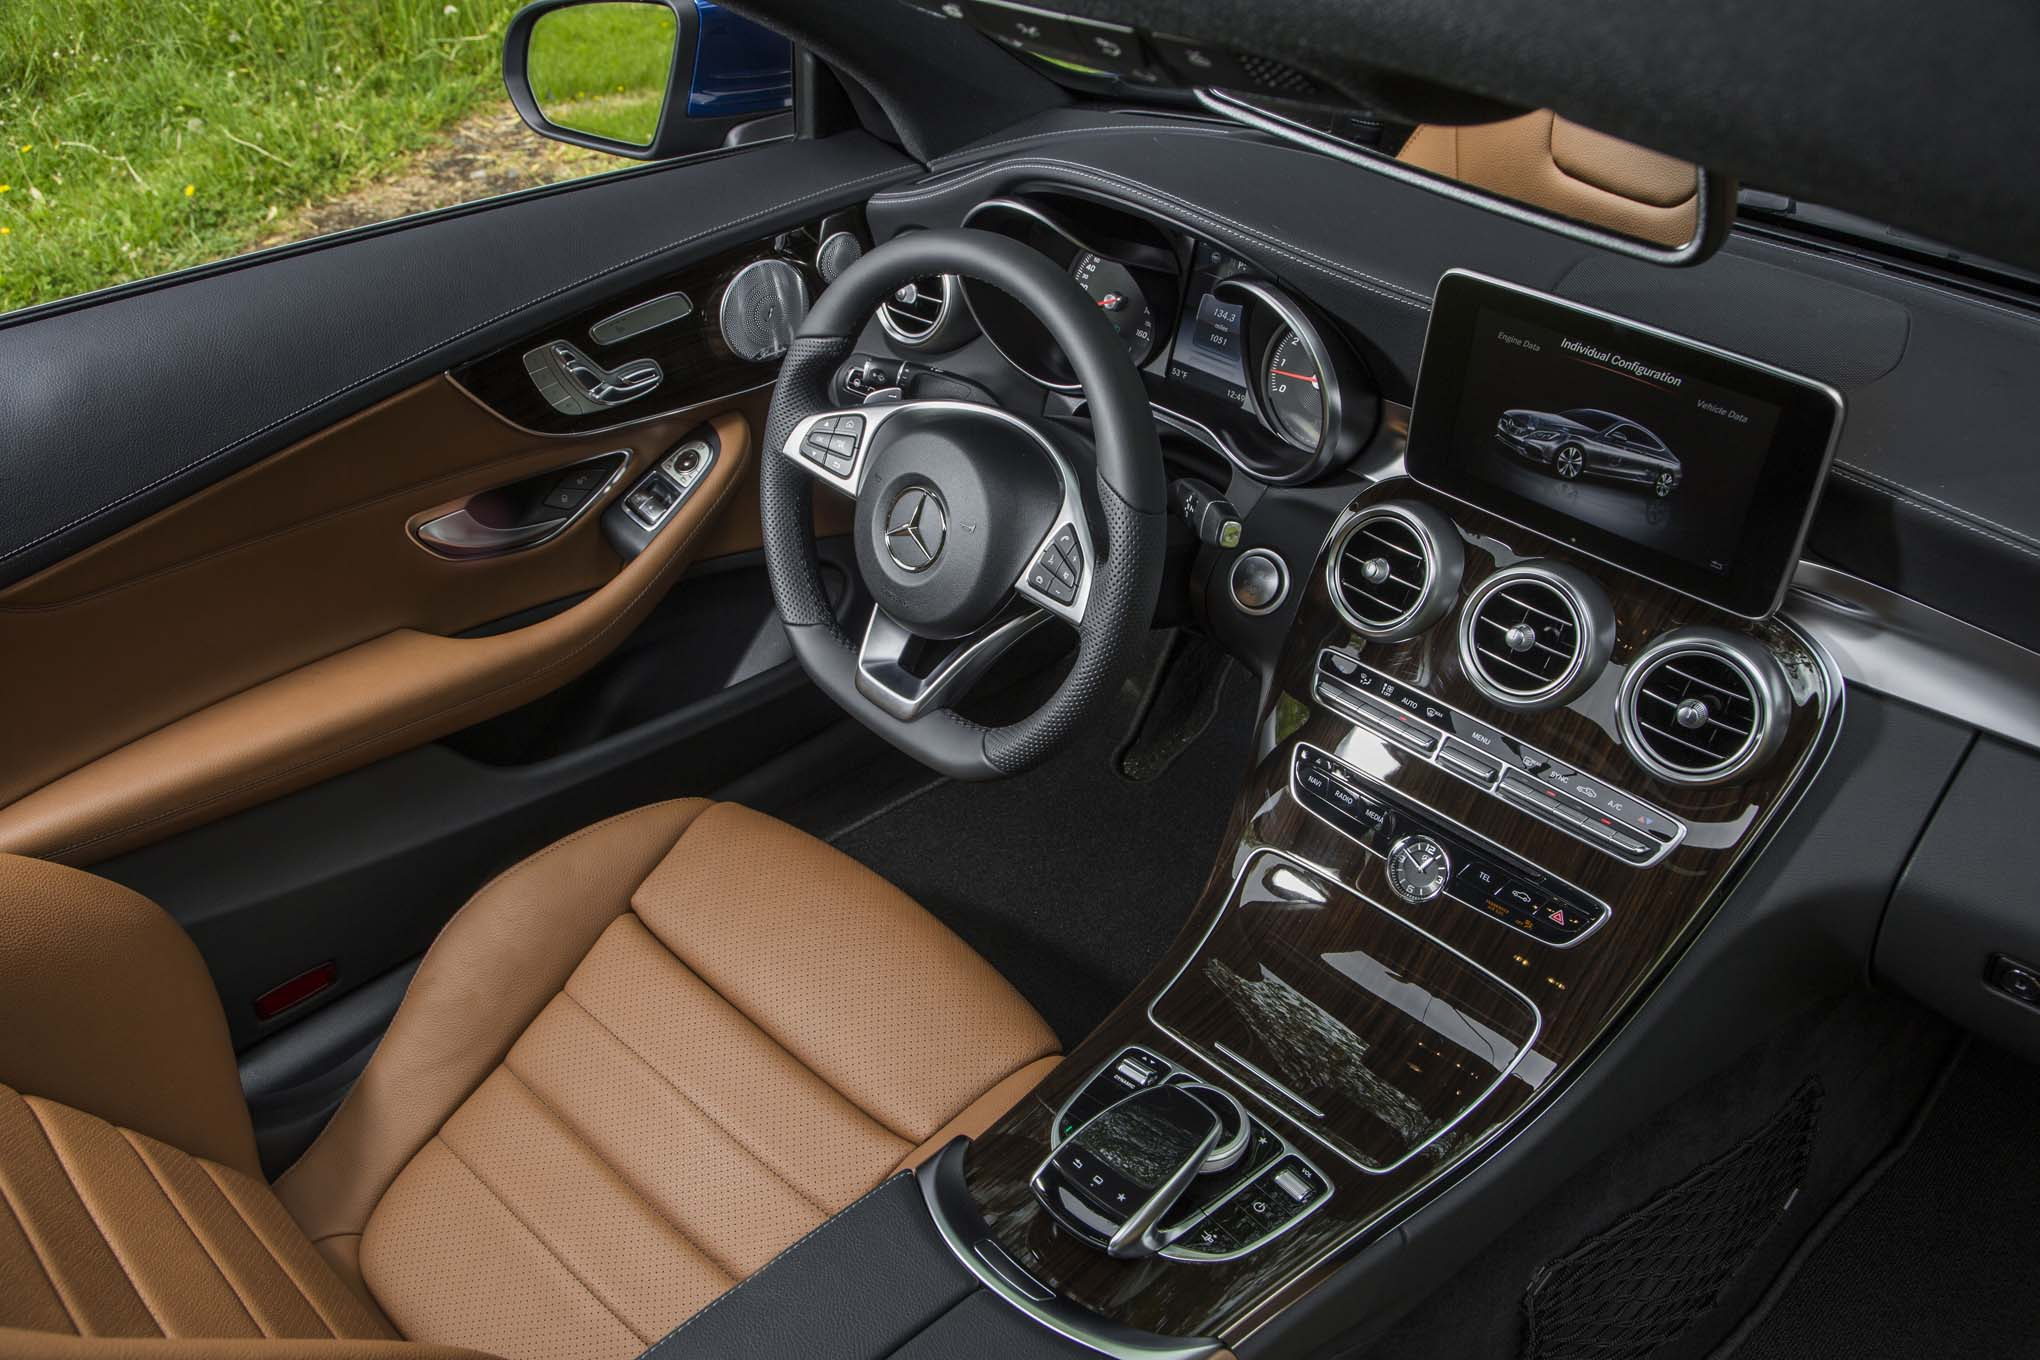 2017 c300 amg interior package for Mercedes benz inside view